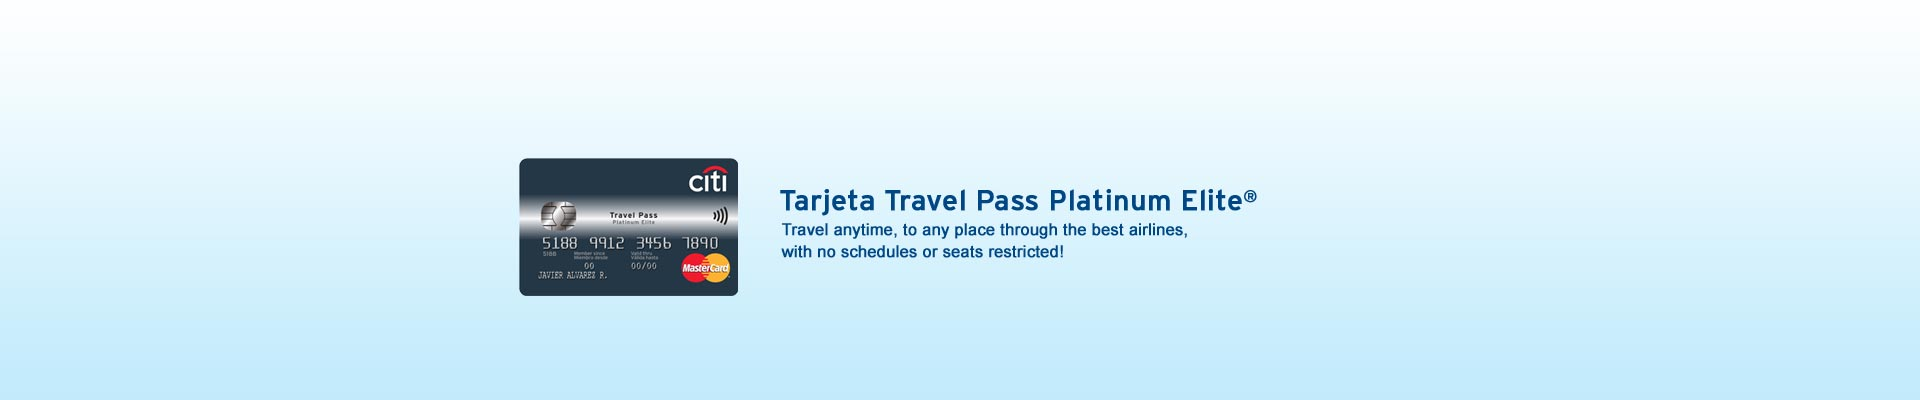 Use your travel pass card and travel whenever you want